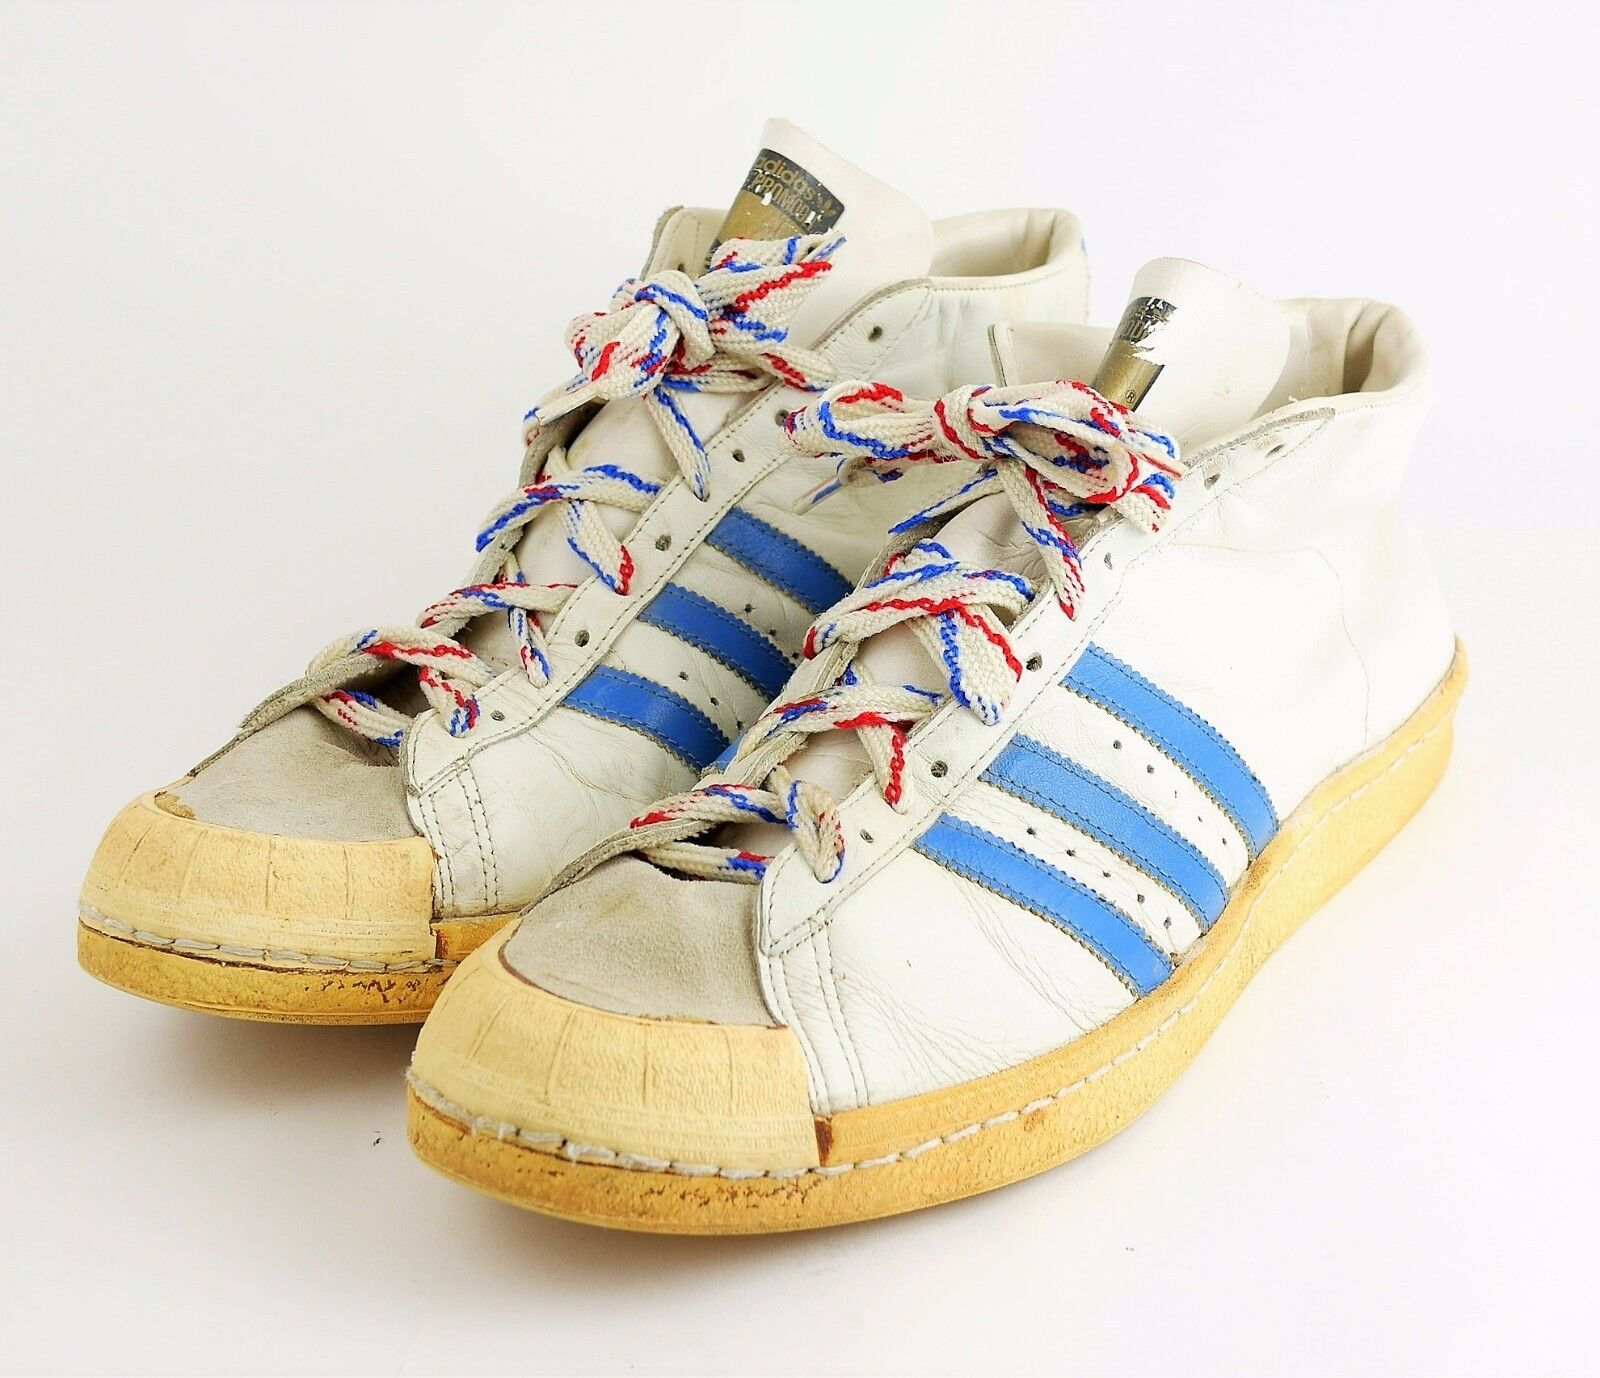 VINTAGE ADIDAS PROMODEL High Top Basketball Athletic Shoes Sneakers - Men's 17